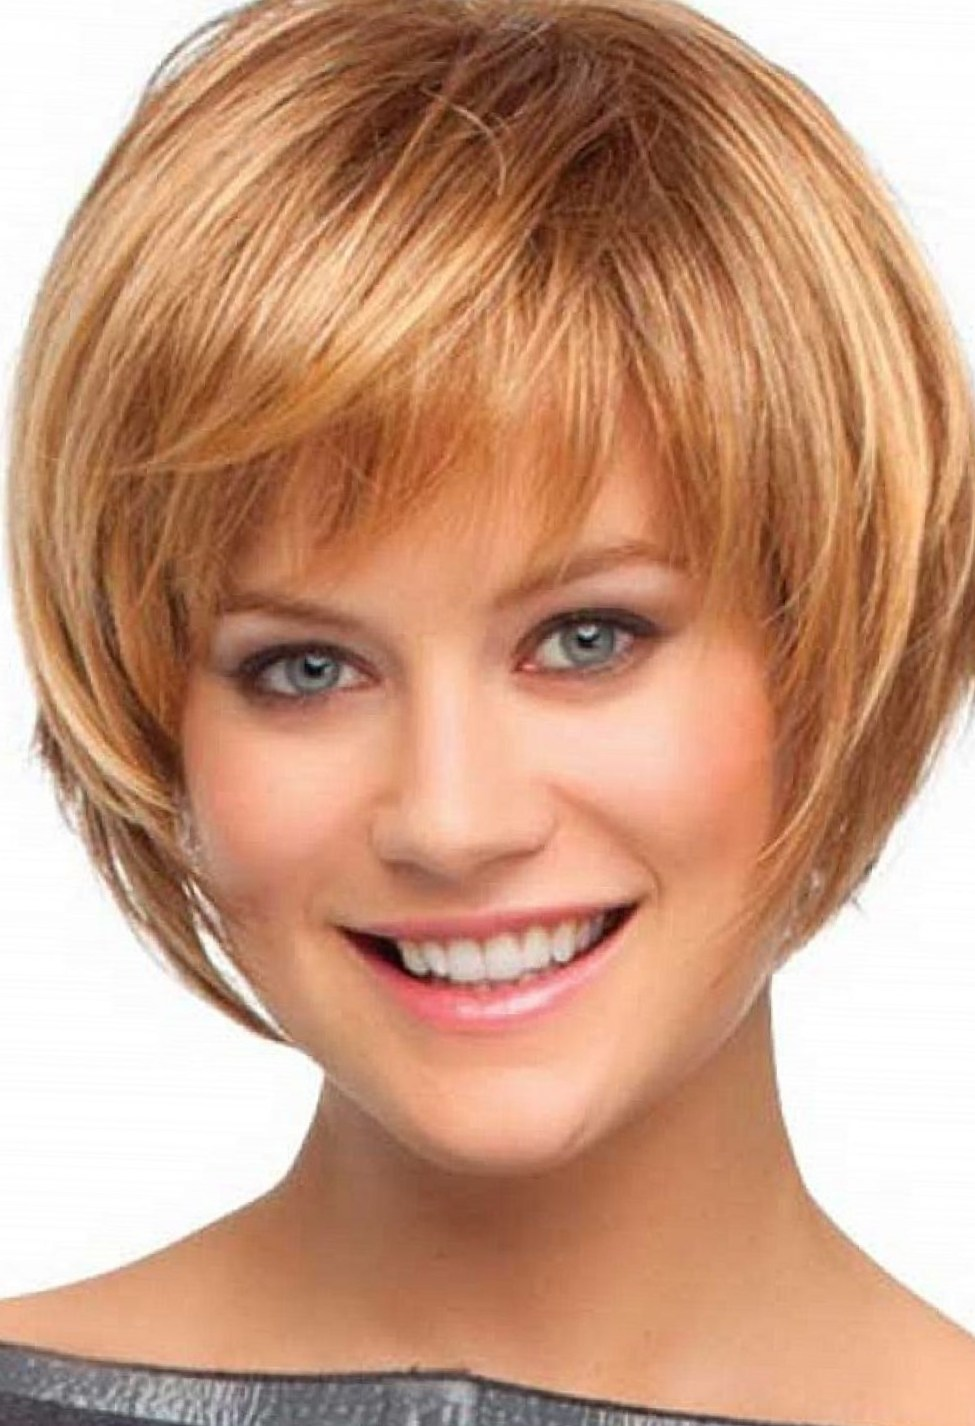 Incredible Short Bob Hairstyles With Bangs 4 Perfect Ideas For You Talk Hairstyles For Women Draintrainus